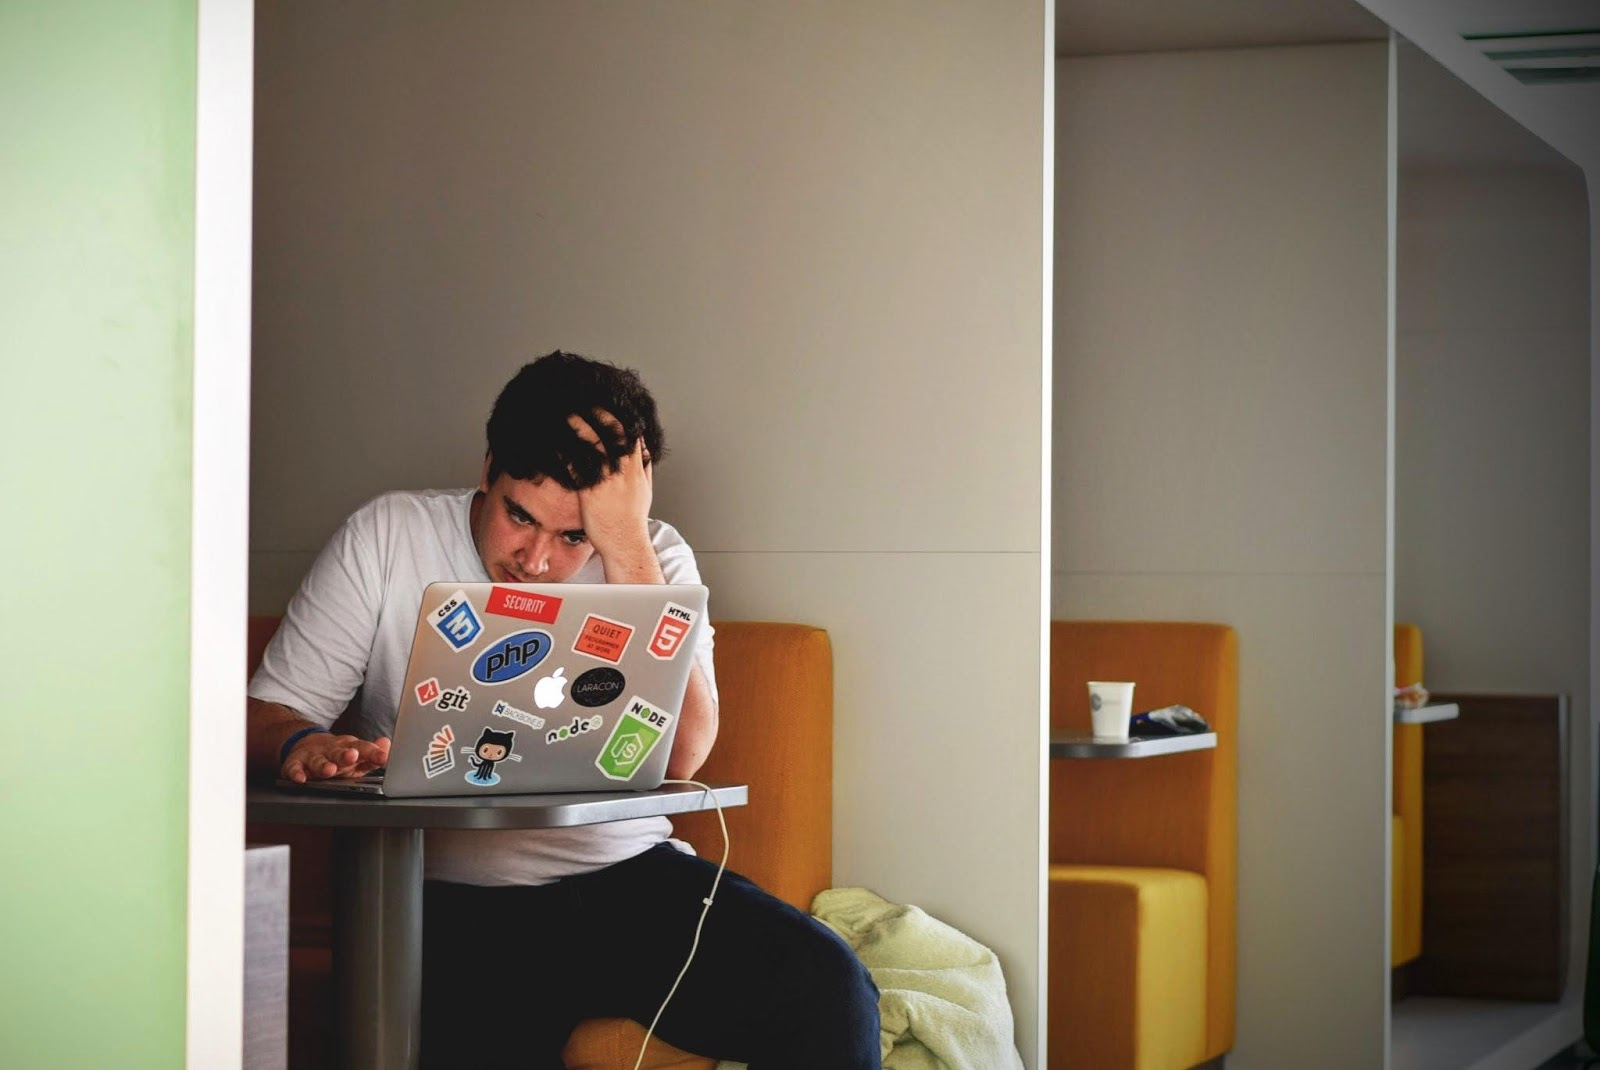 Ecommerce Developers Share Their Biggest B2B Pet Peeves